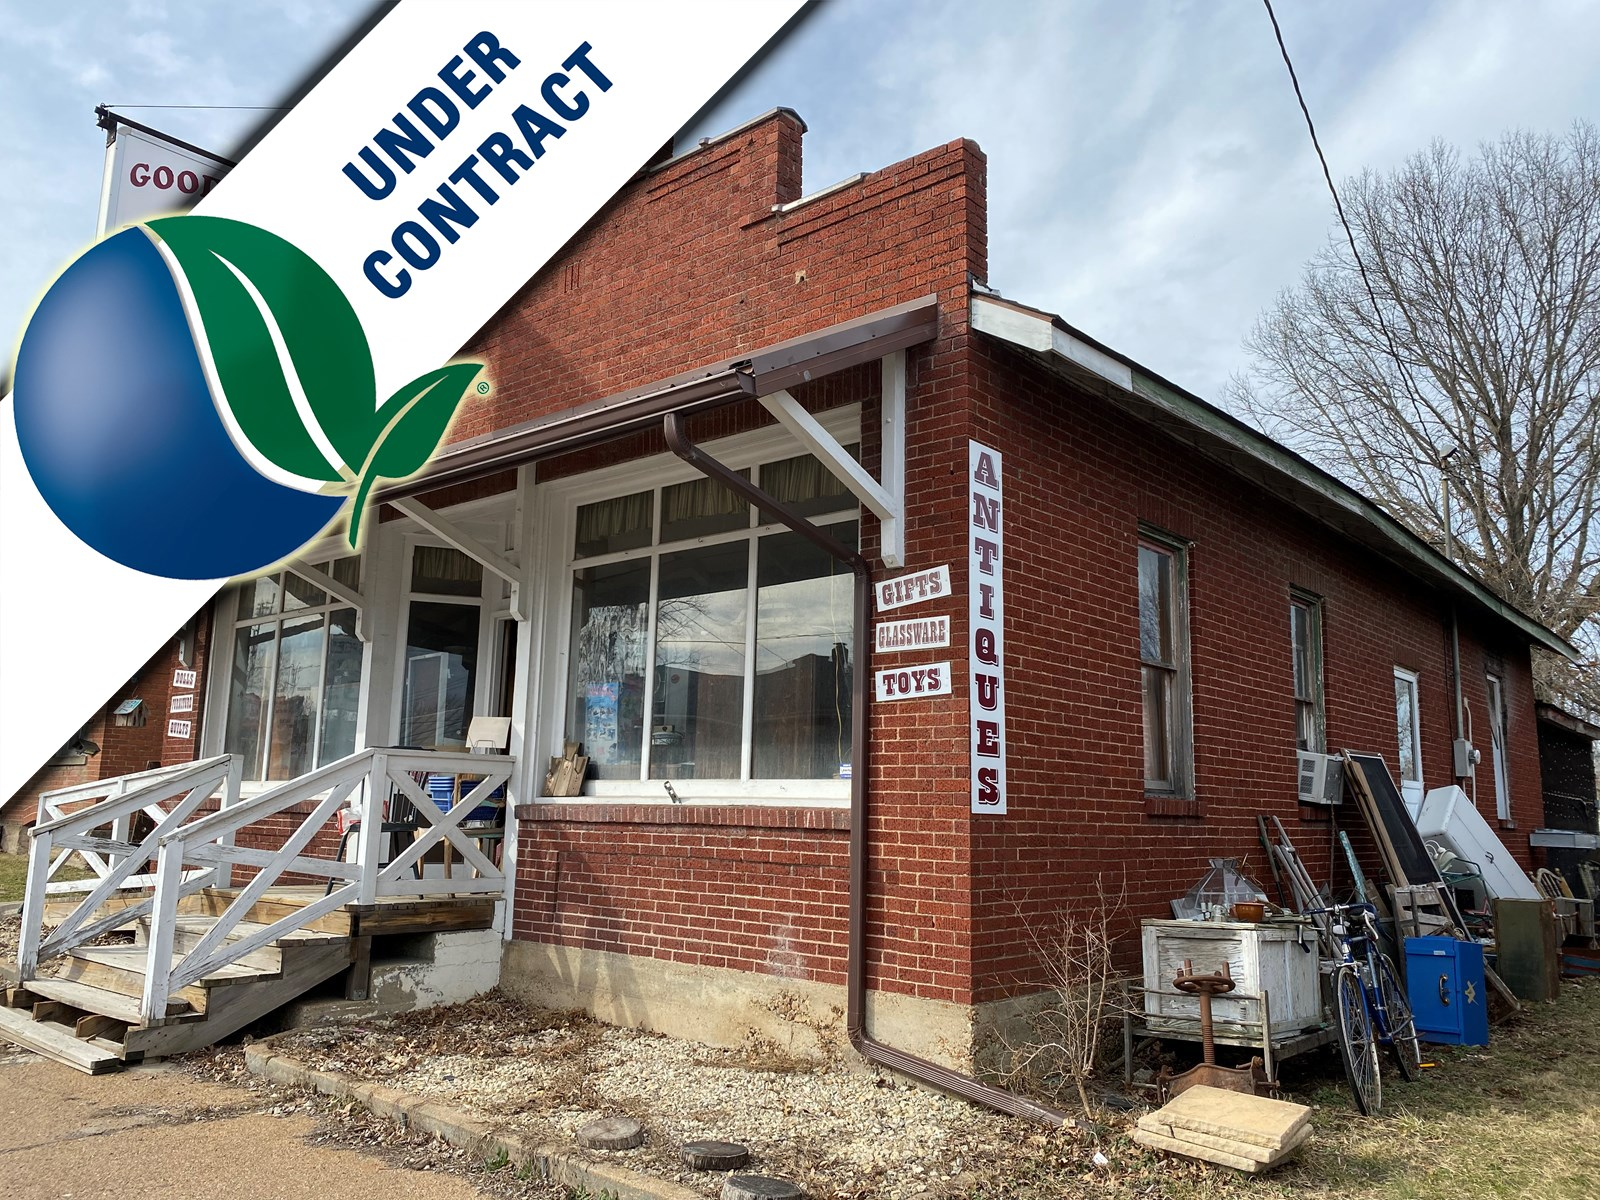 Fixer upper with charming storefront located in Rosebud!